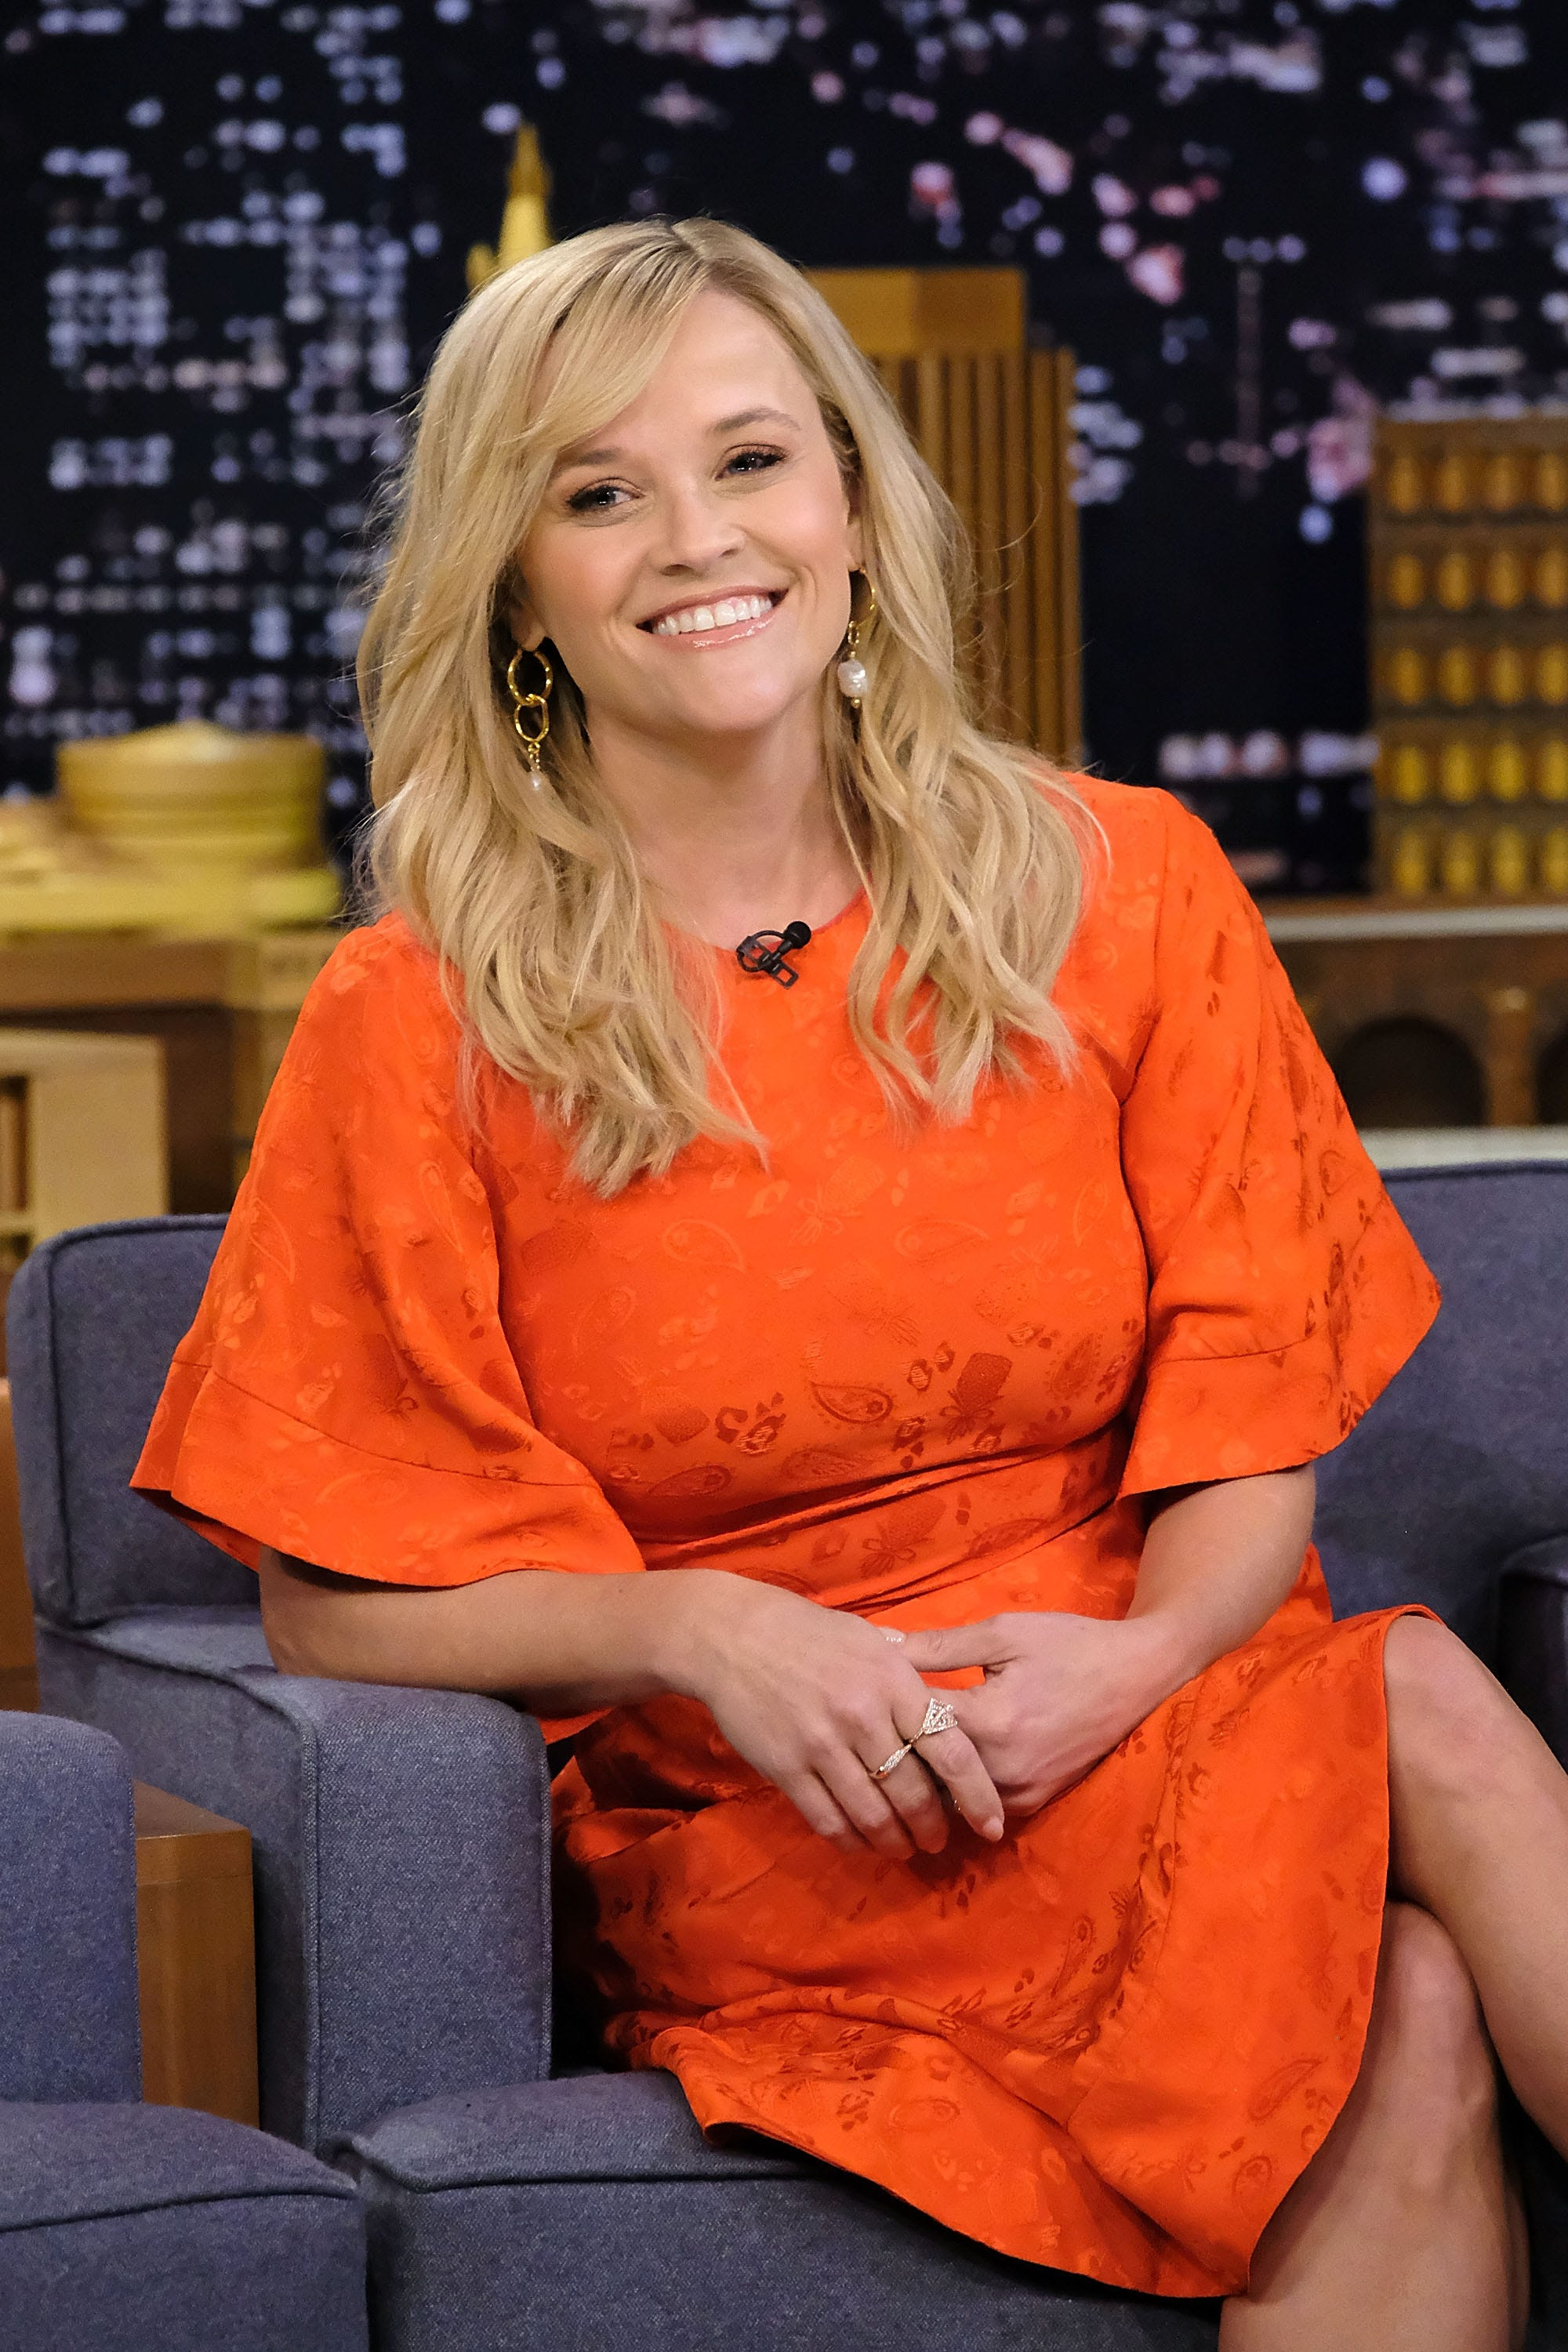 in bikini Video Reese Witherspoon naked photo 2017